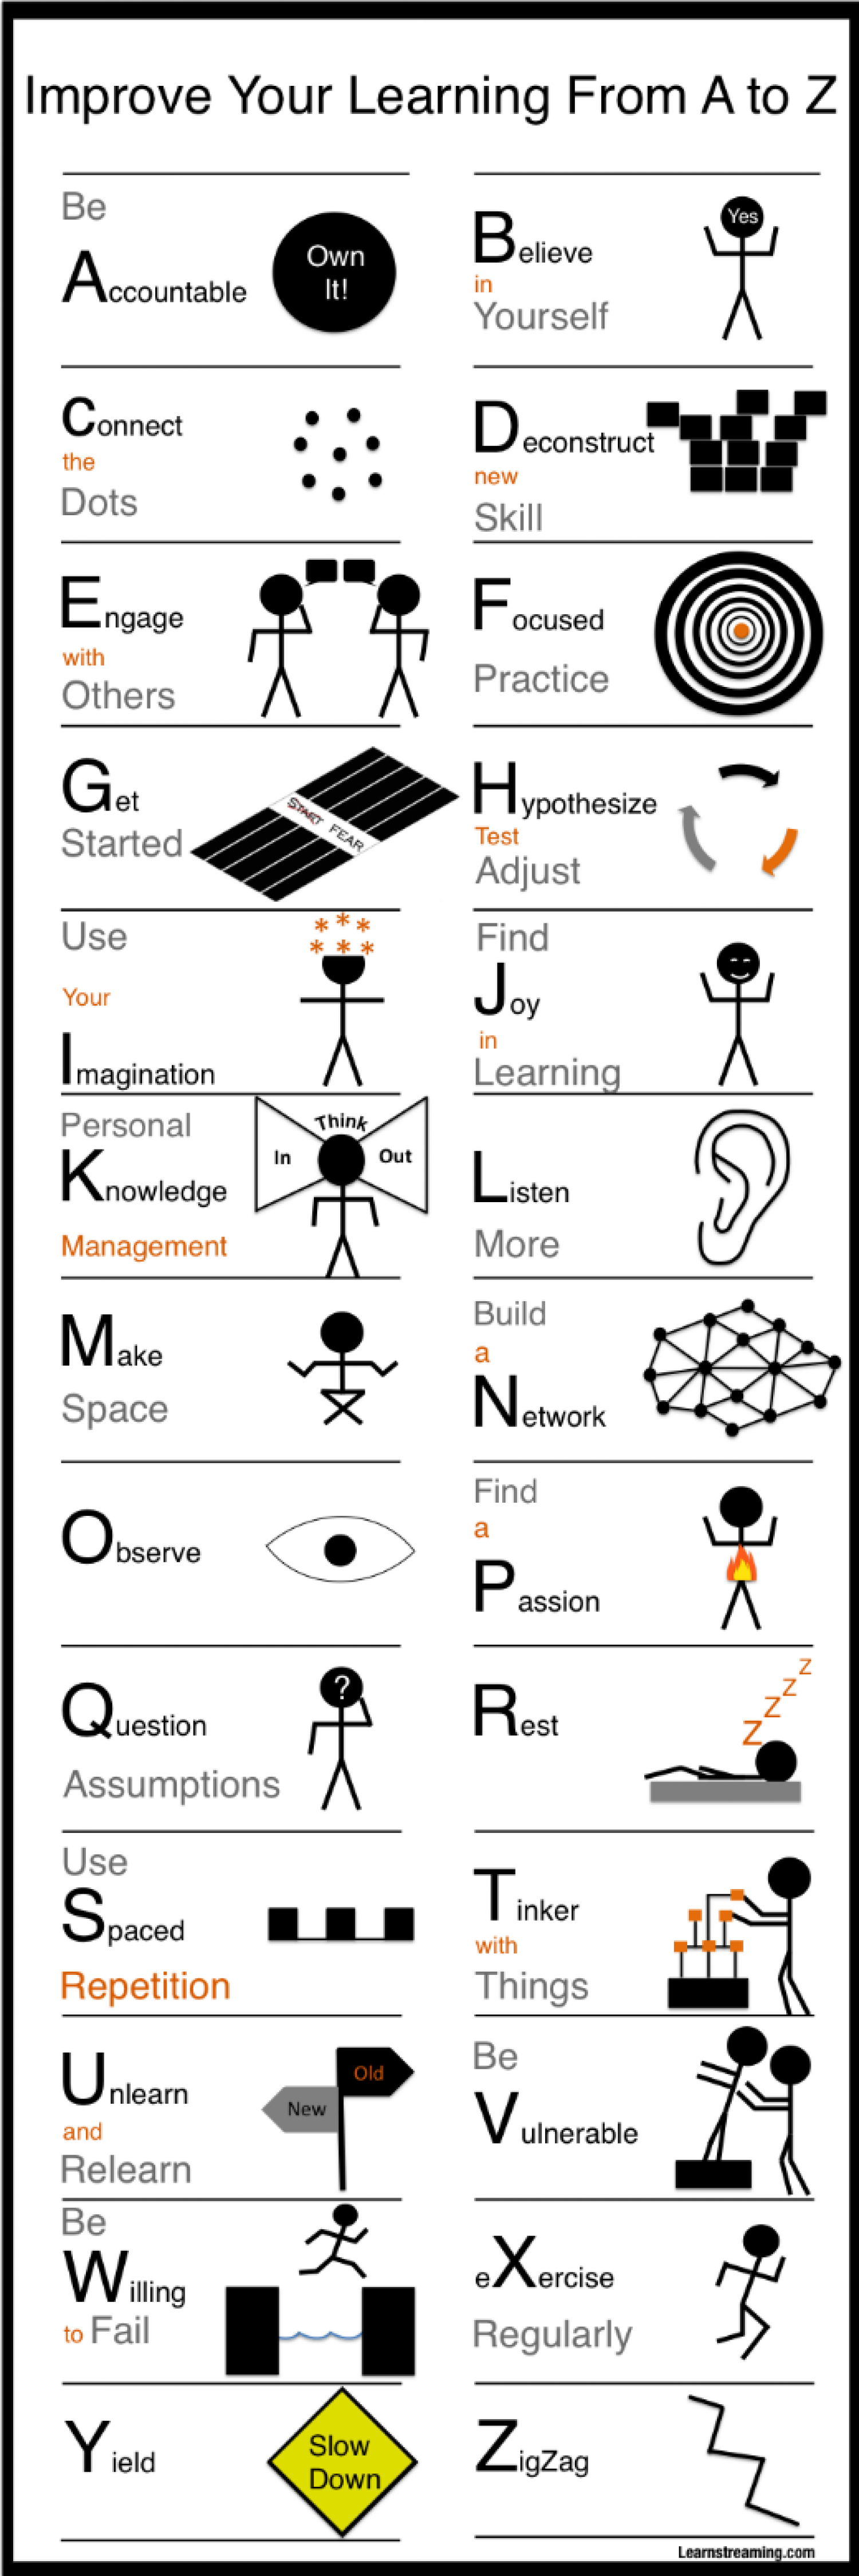 Improve Your Learning From A to Z Infographic